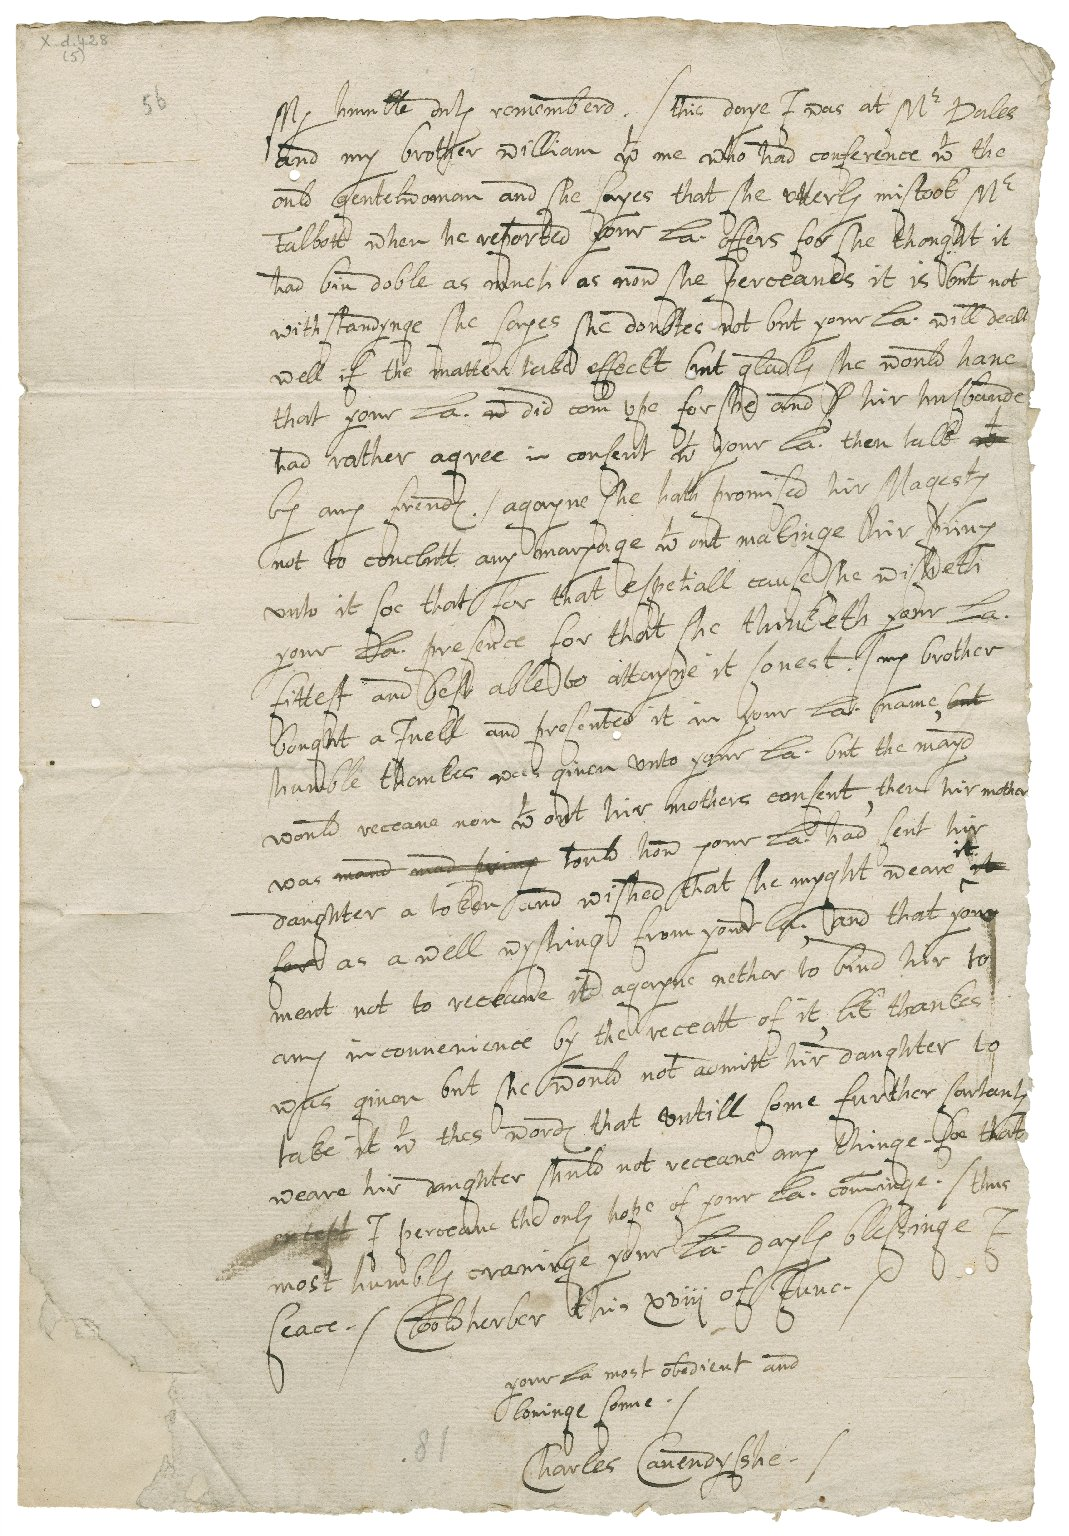 Letter from Sir Charles Cavendish, Coldharbour (Cooldherber), London, to Elizabeth Hardwick Talbot, Countess of Shrewsbury